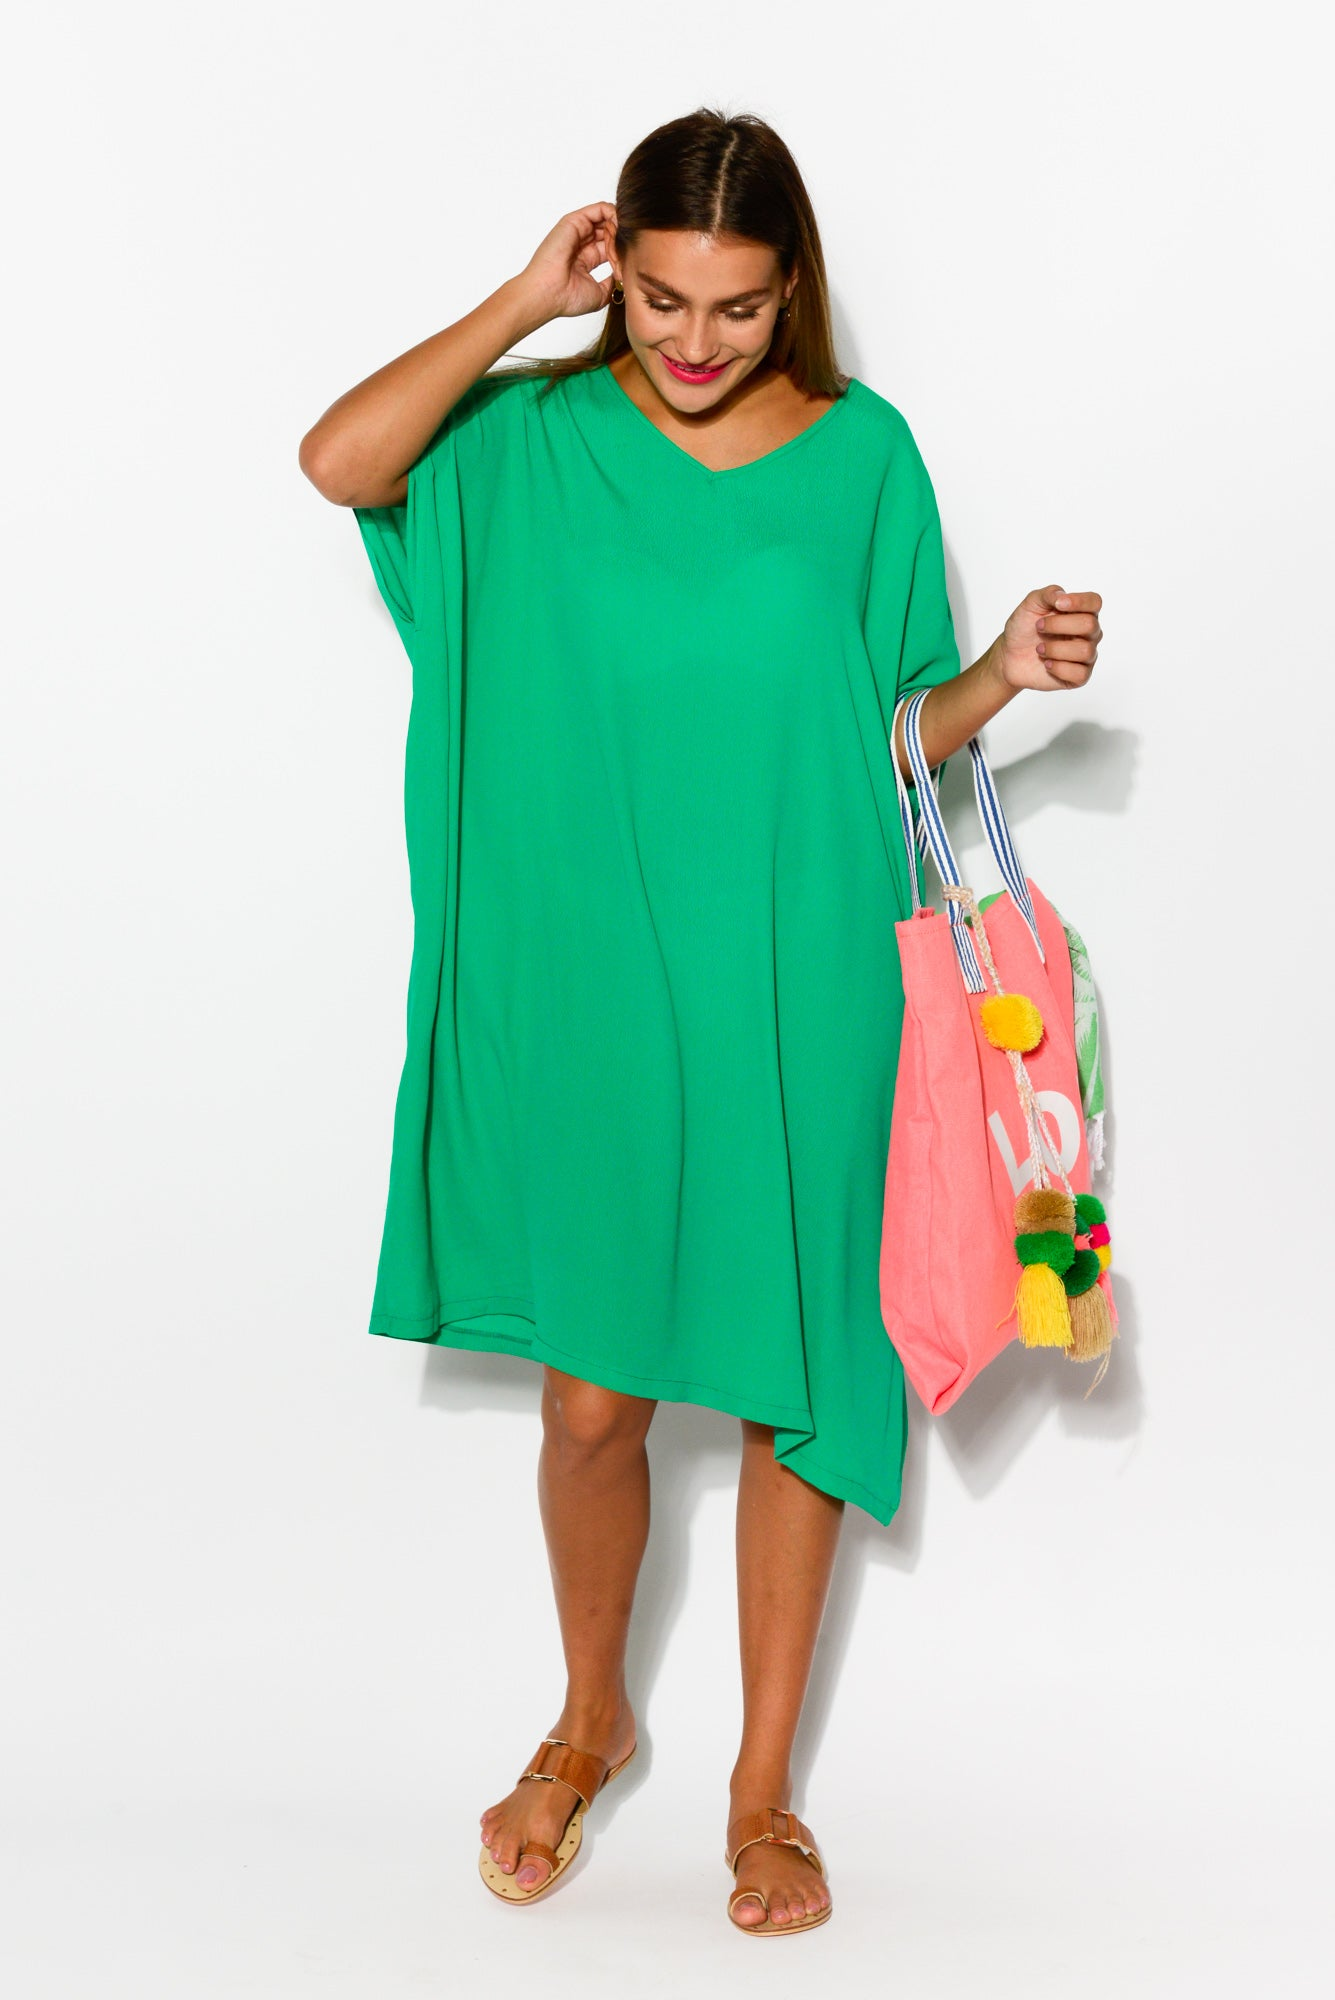 Tallie Green Drape Dress - Blue Bungalow